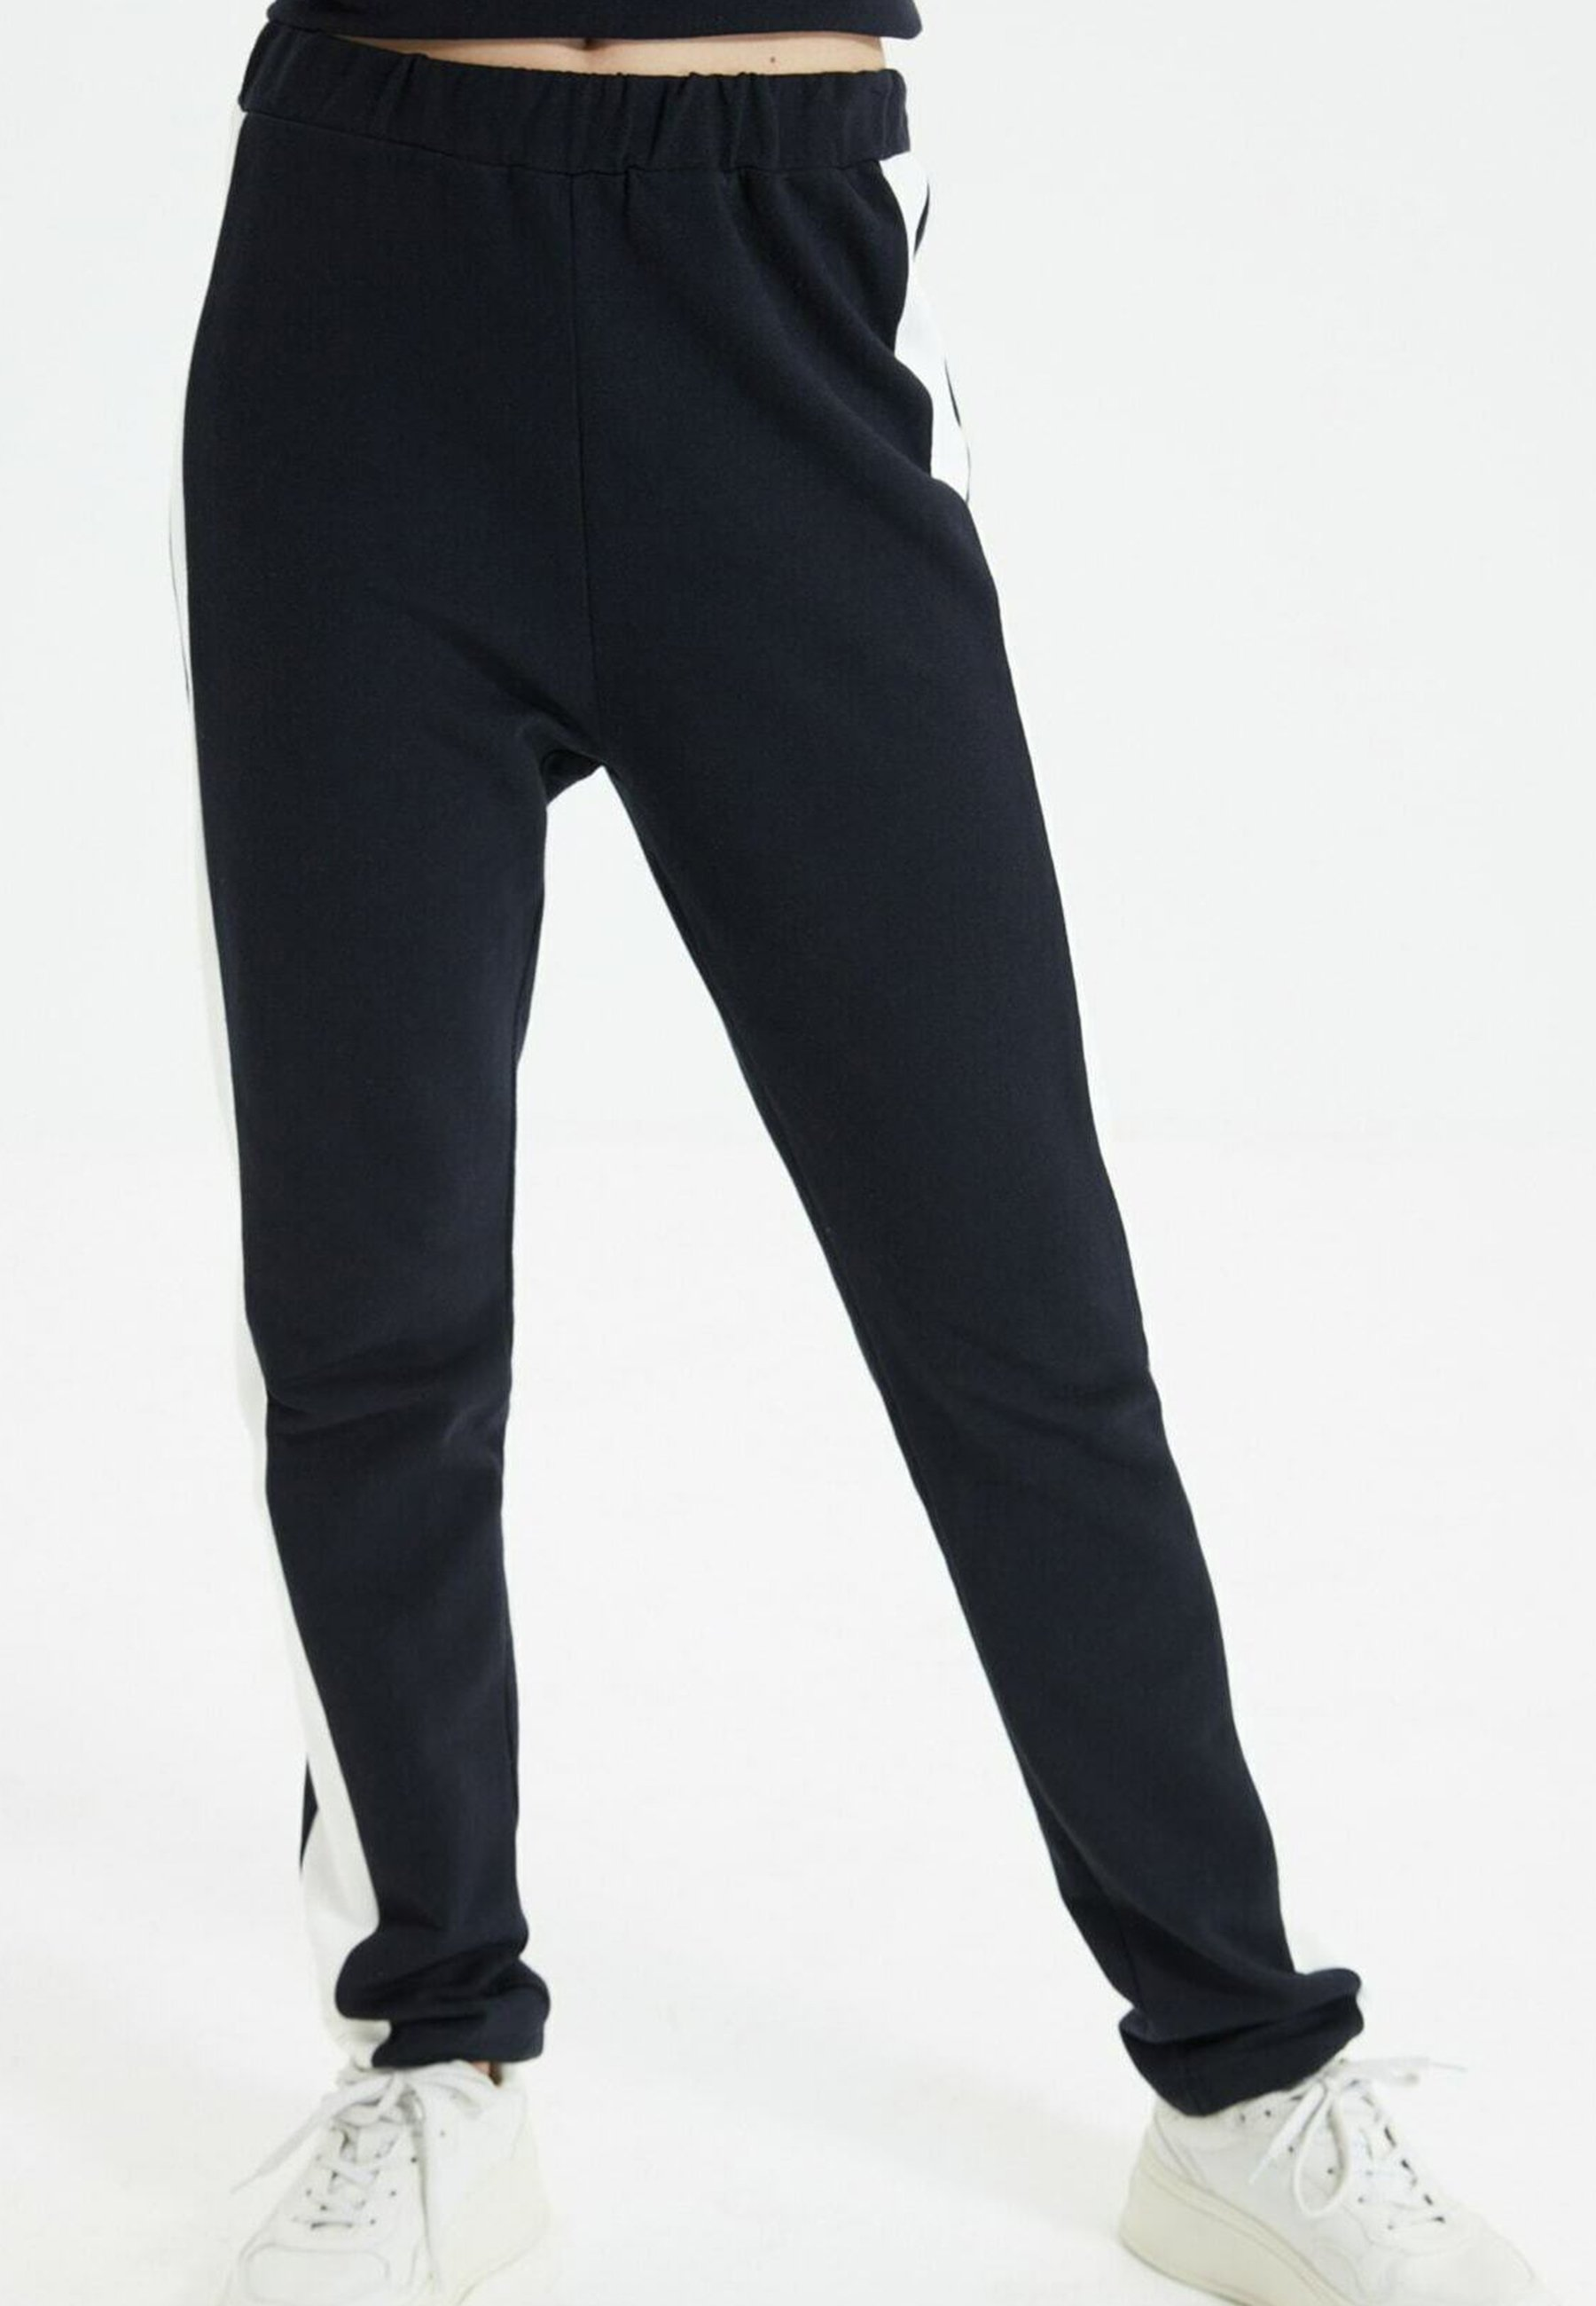 Mujer parent - Jeggings